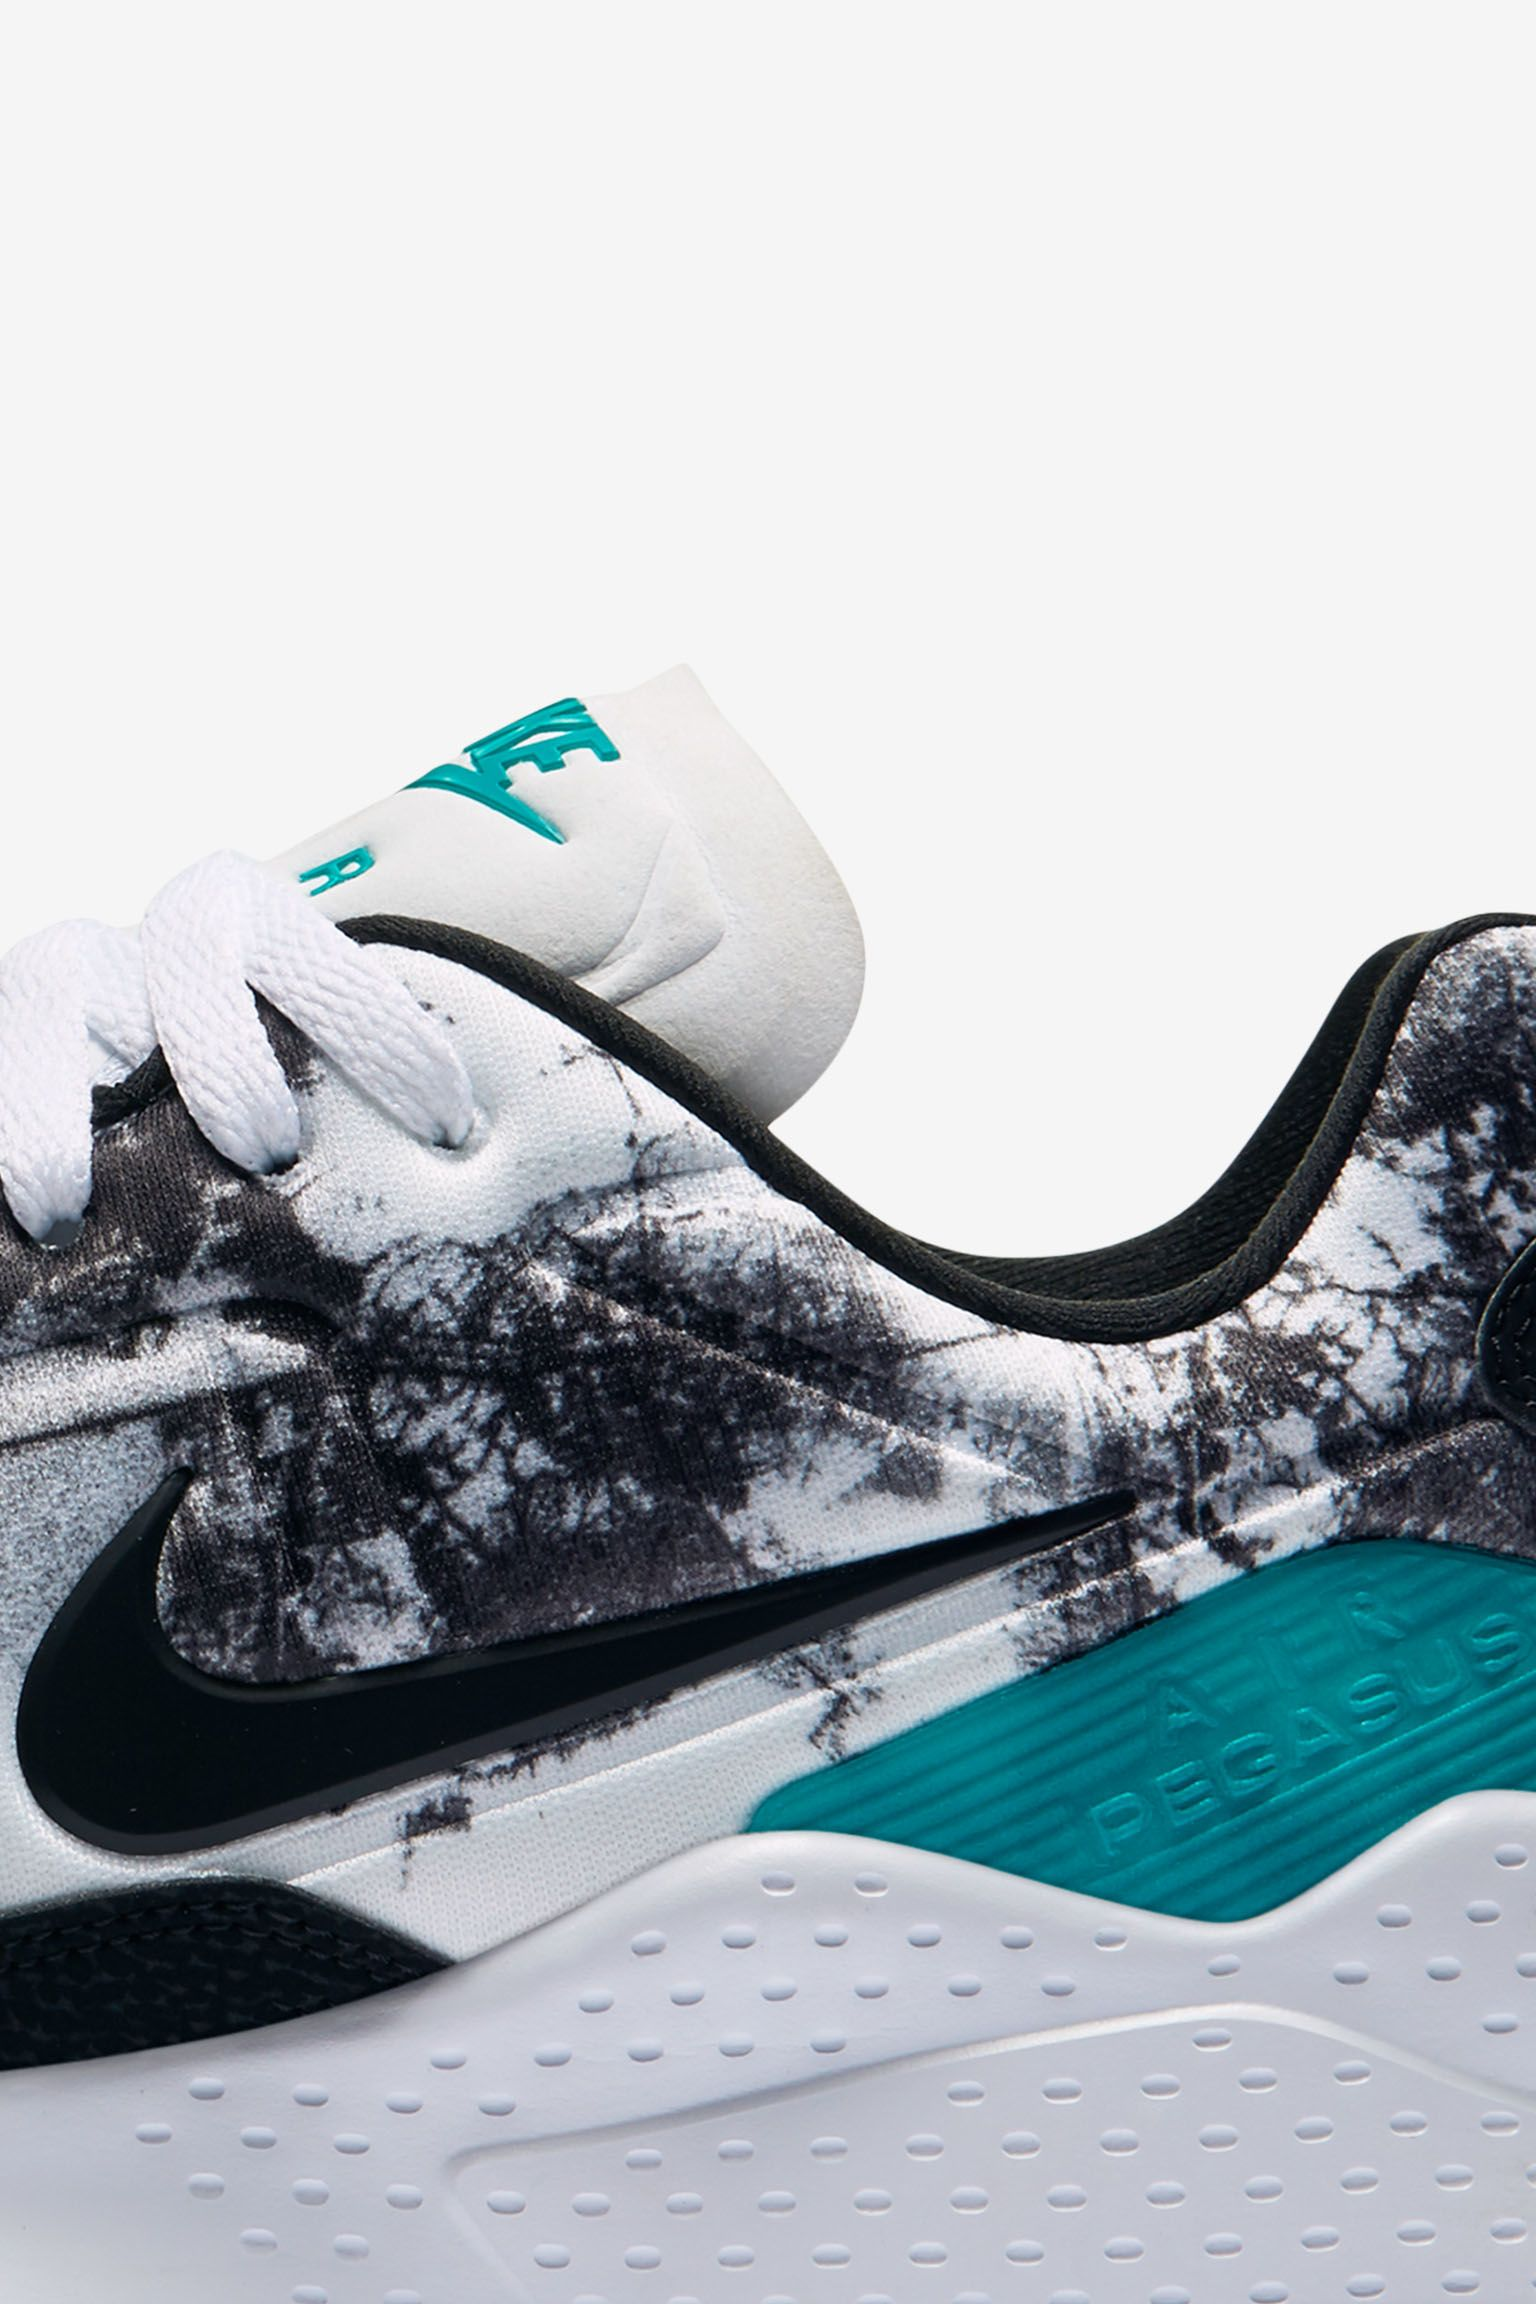 Nike Air Zoom Pegasus 92 'White & Rio Teal'